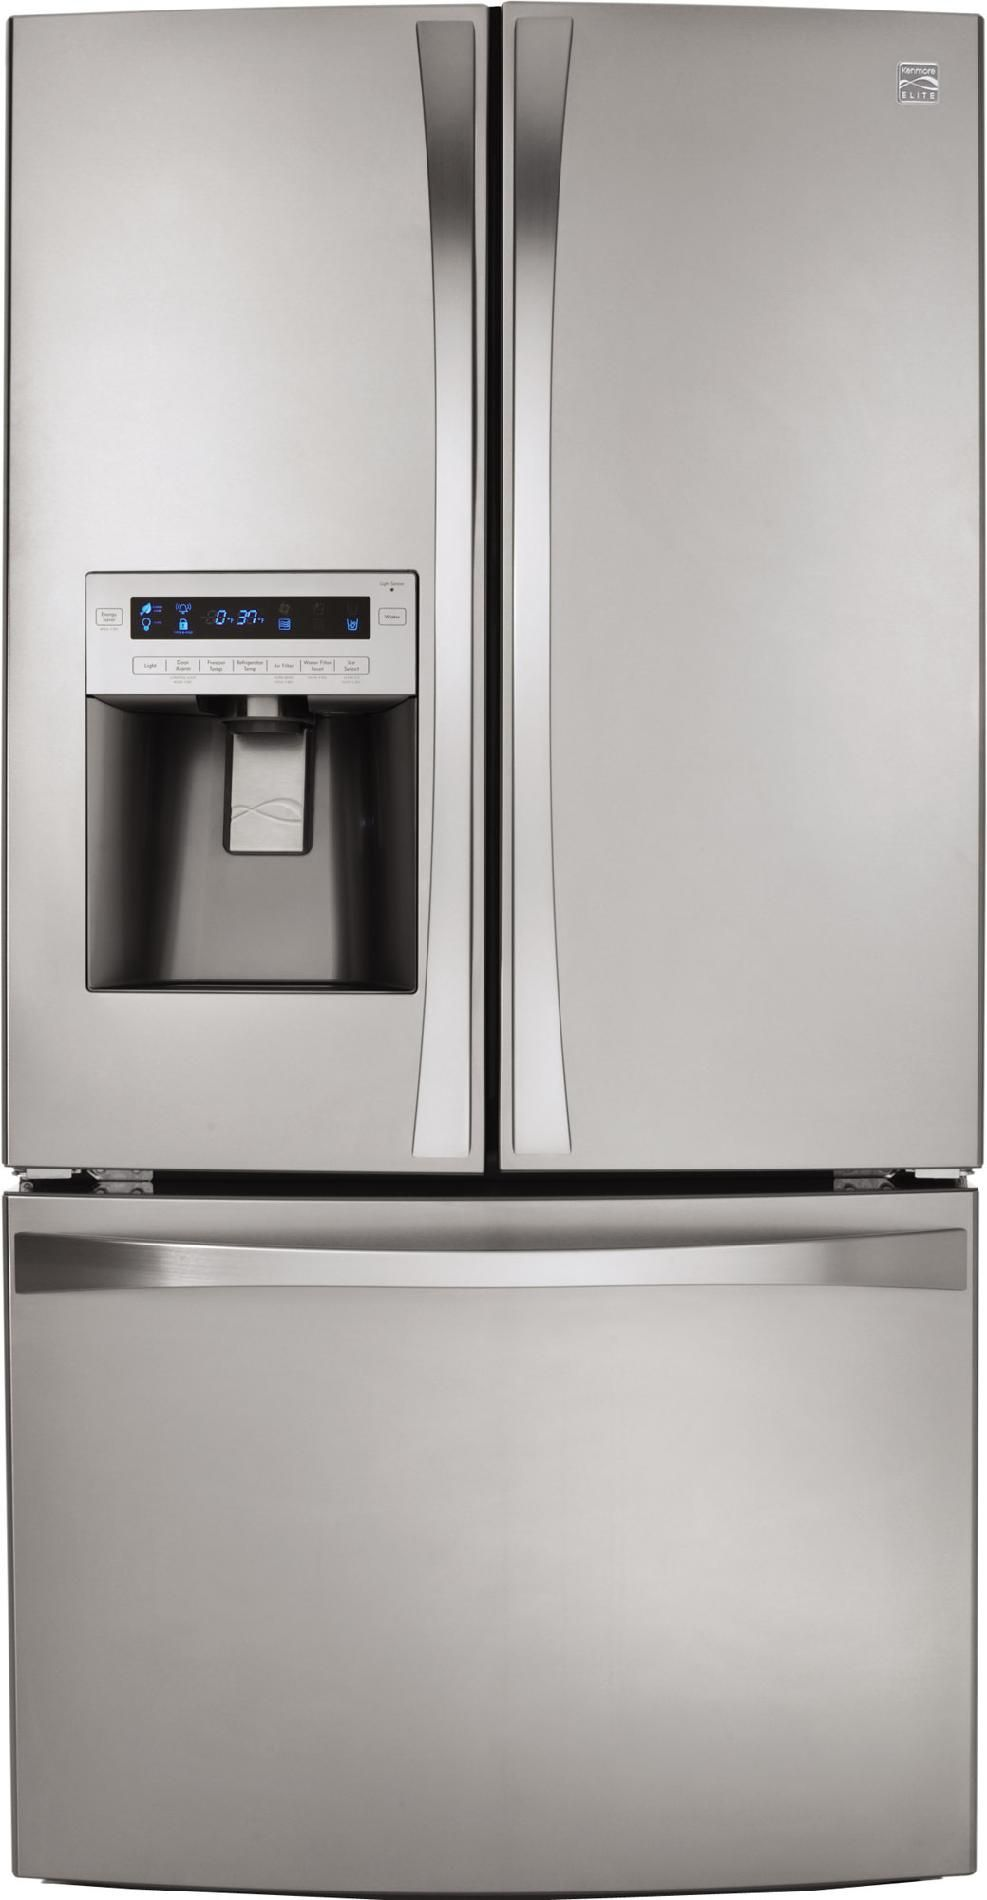 inspiring refrigerator xfile ft elite kenmore doors and cu ge door bottomzer french inch of trend